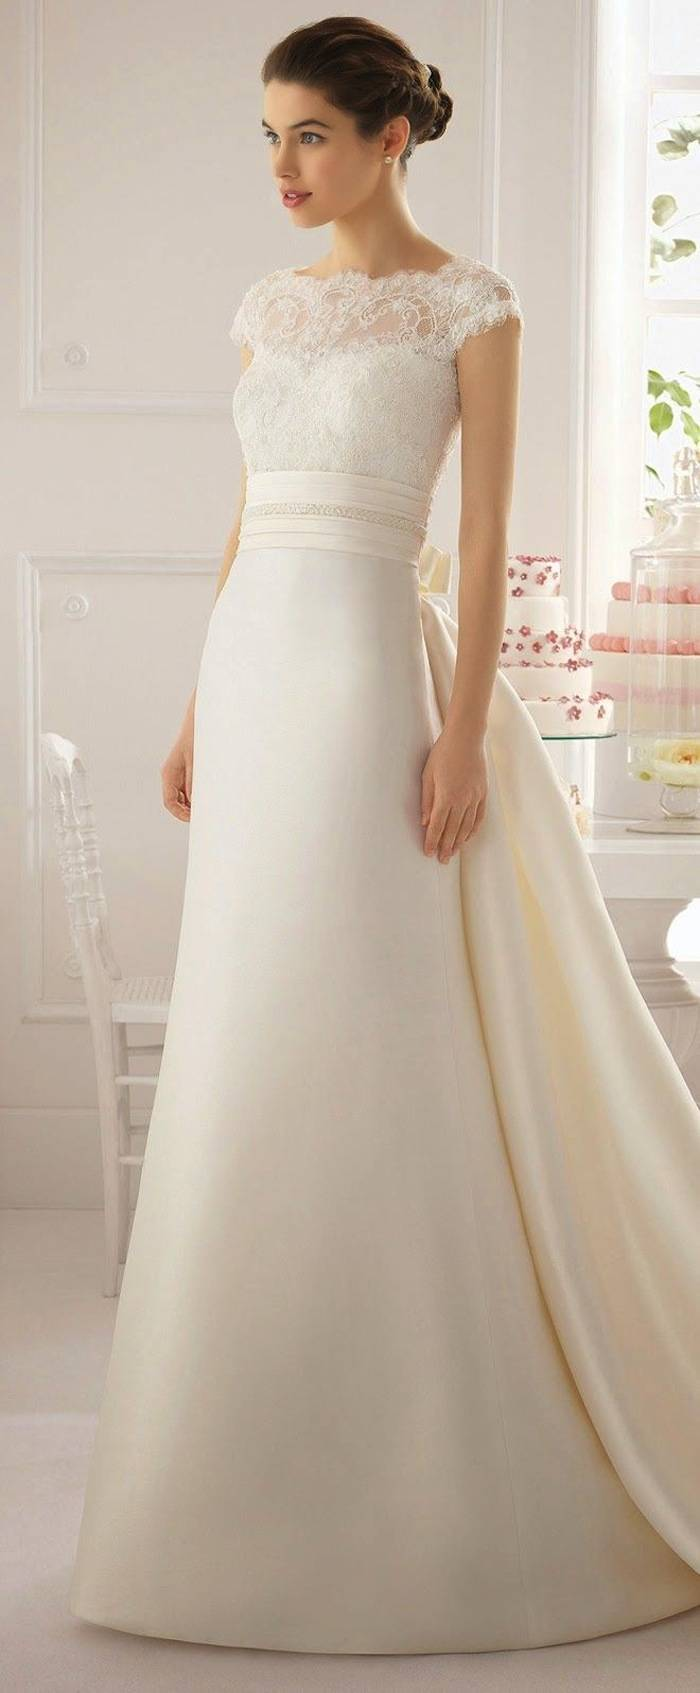 Modest wedding dresses with pretty details modwedding for No lace wedding dress